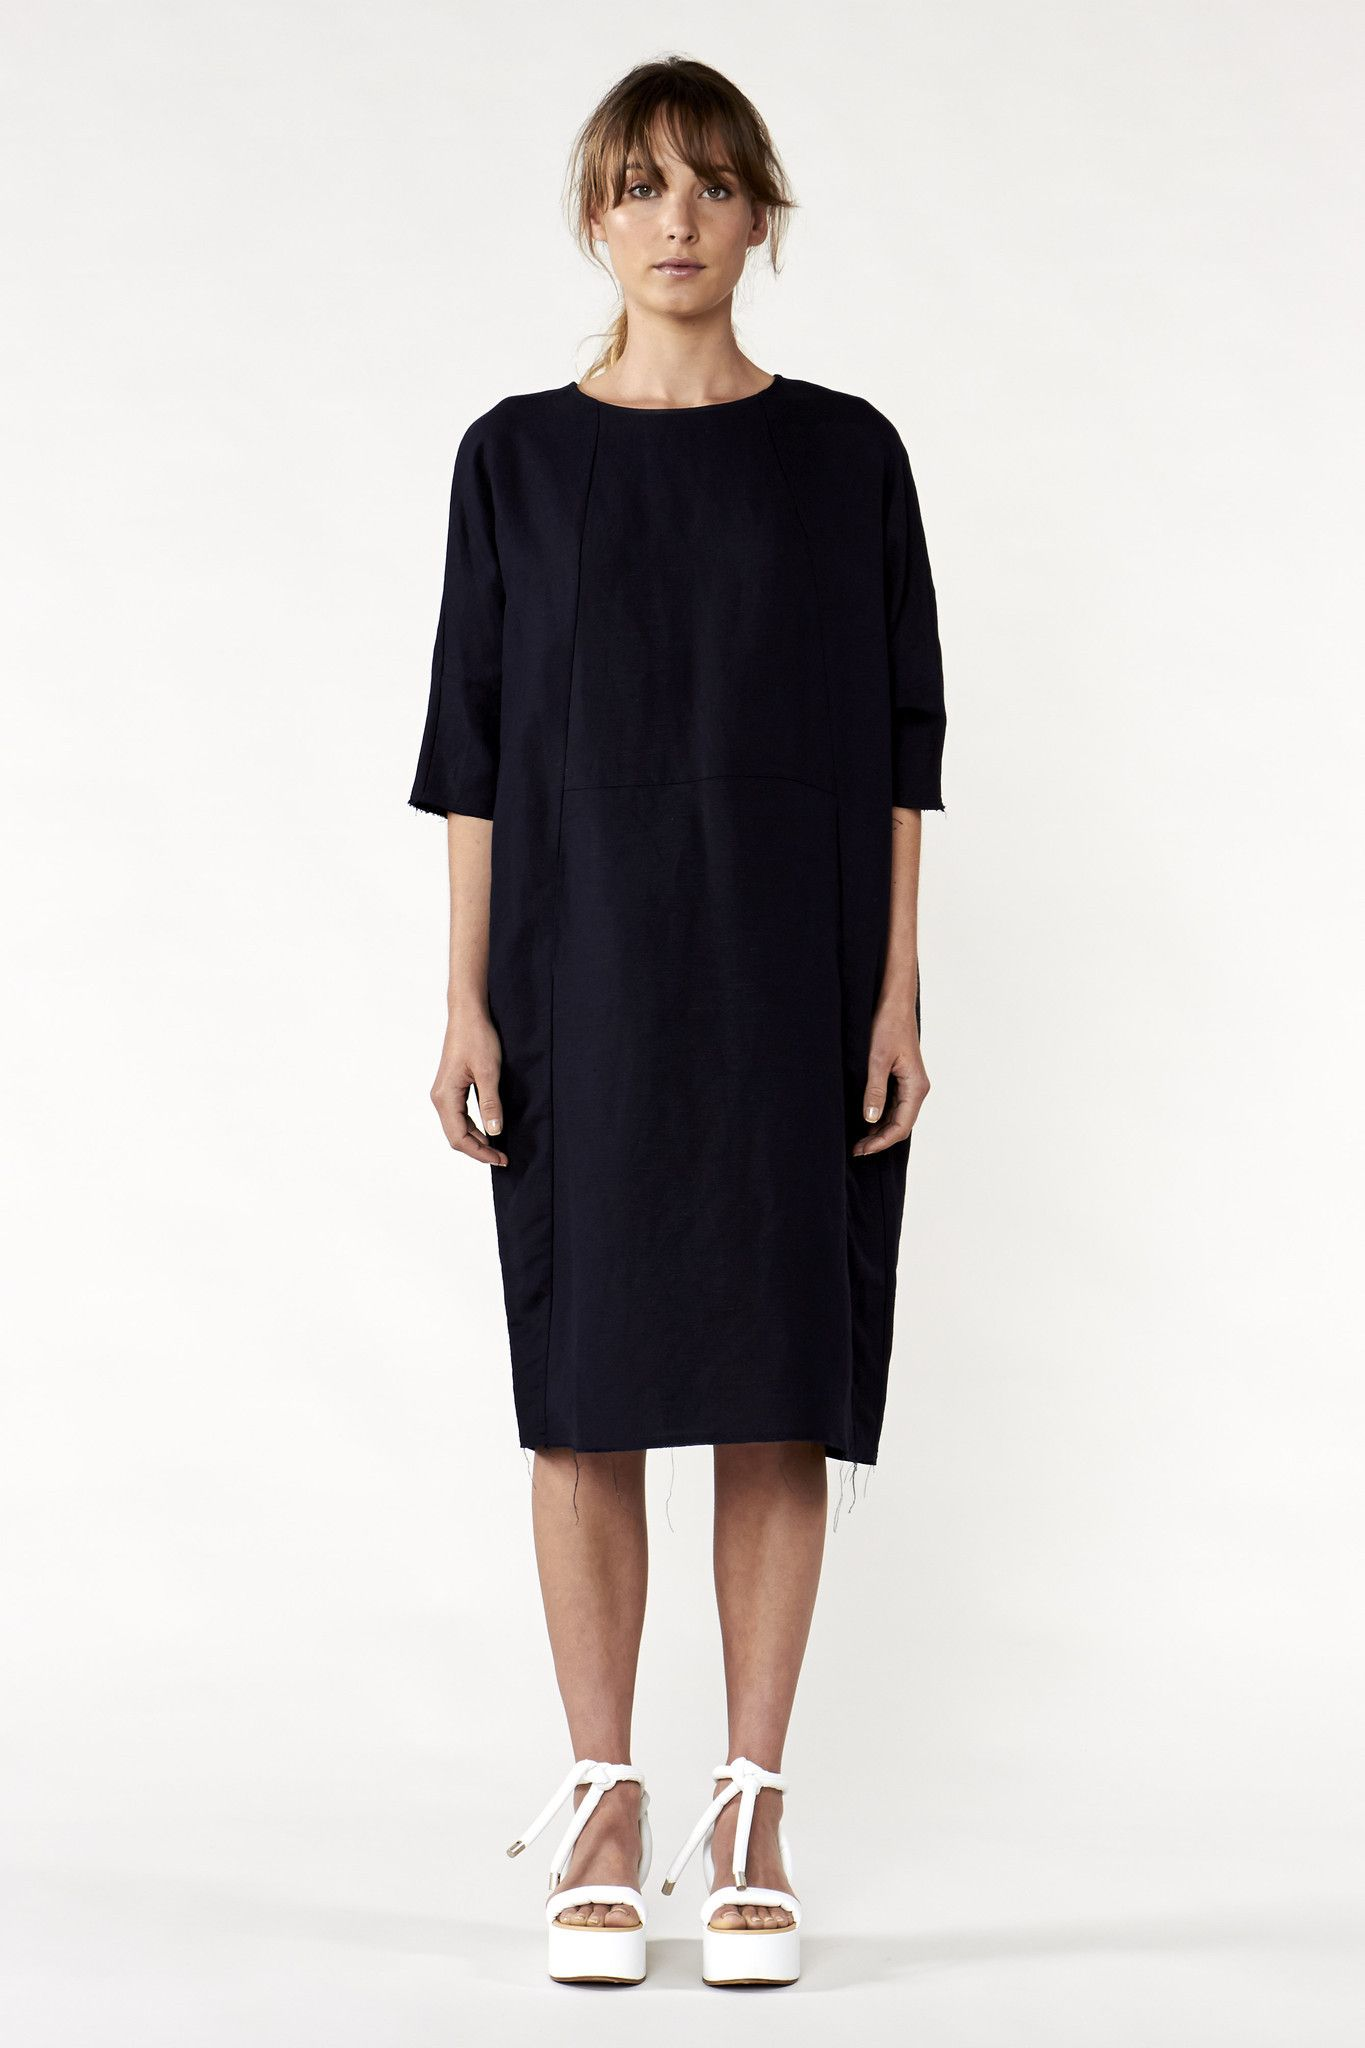 Oversized cocoon dress with kimono darted back sleeve and front